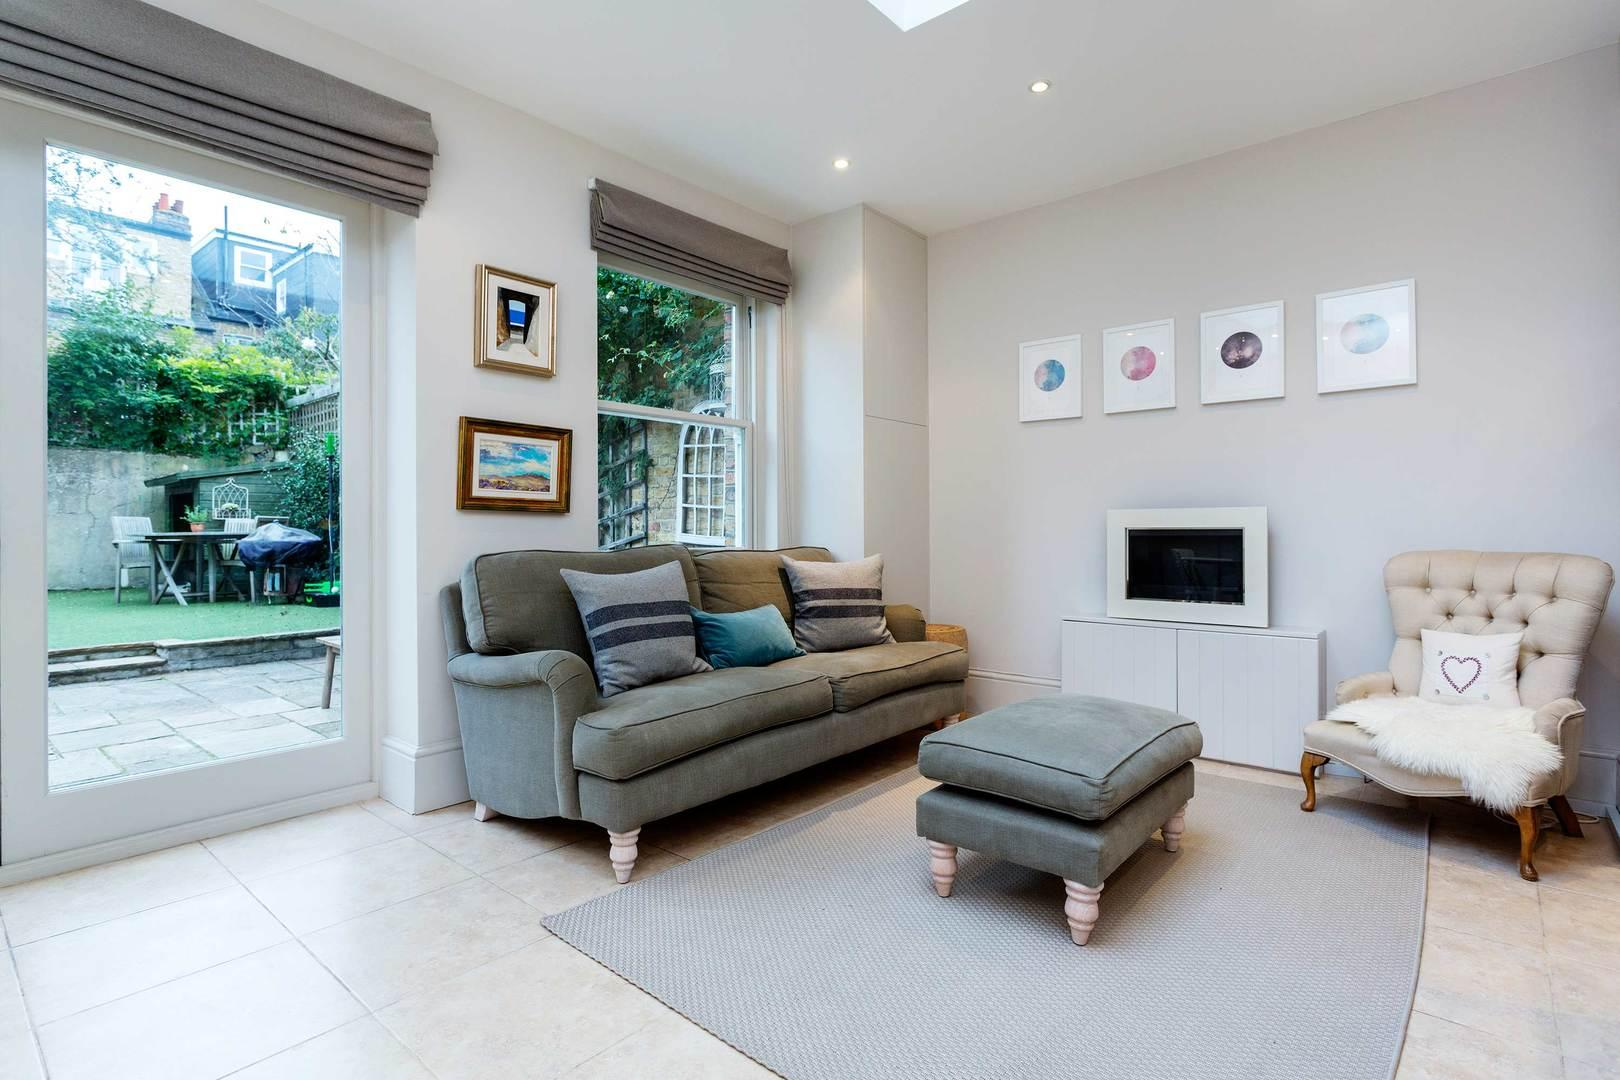 Property Image 2 - Classic Family Home in Wandsworth with Private Garden